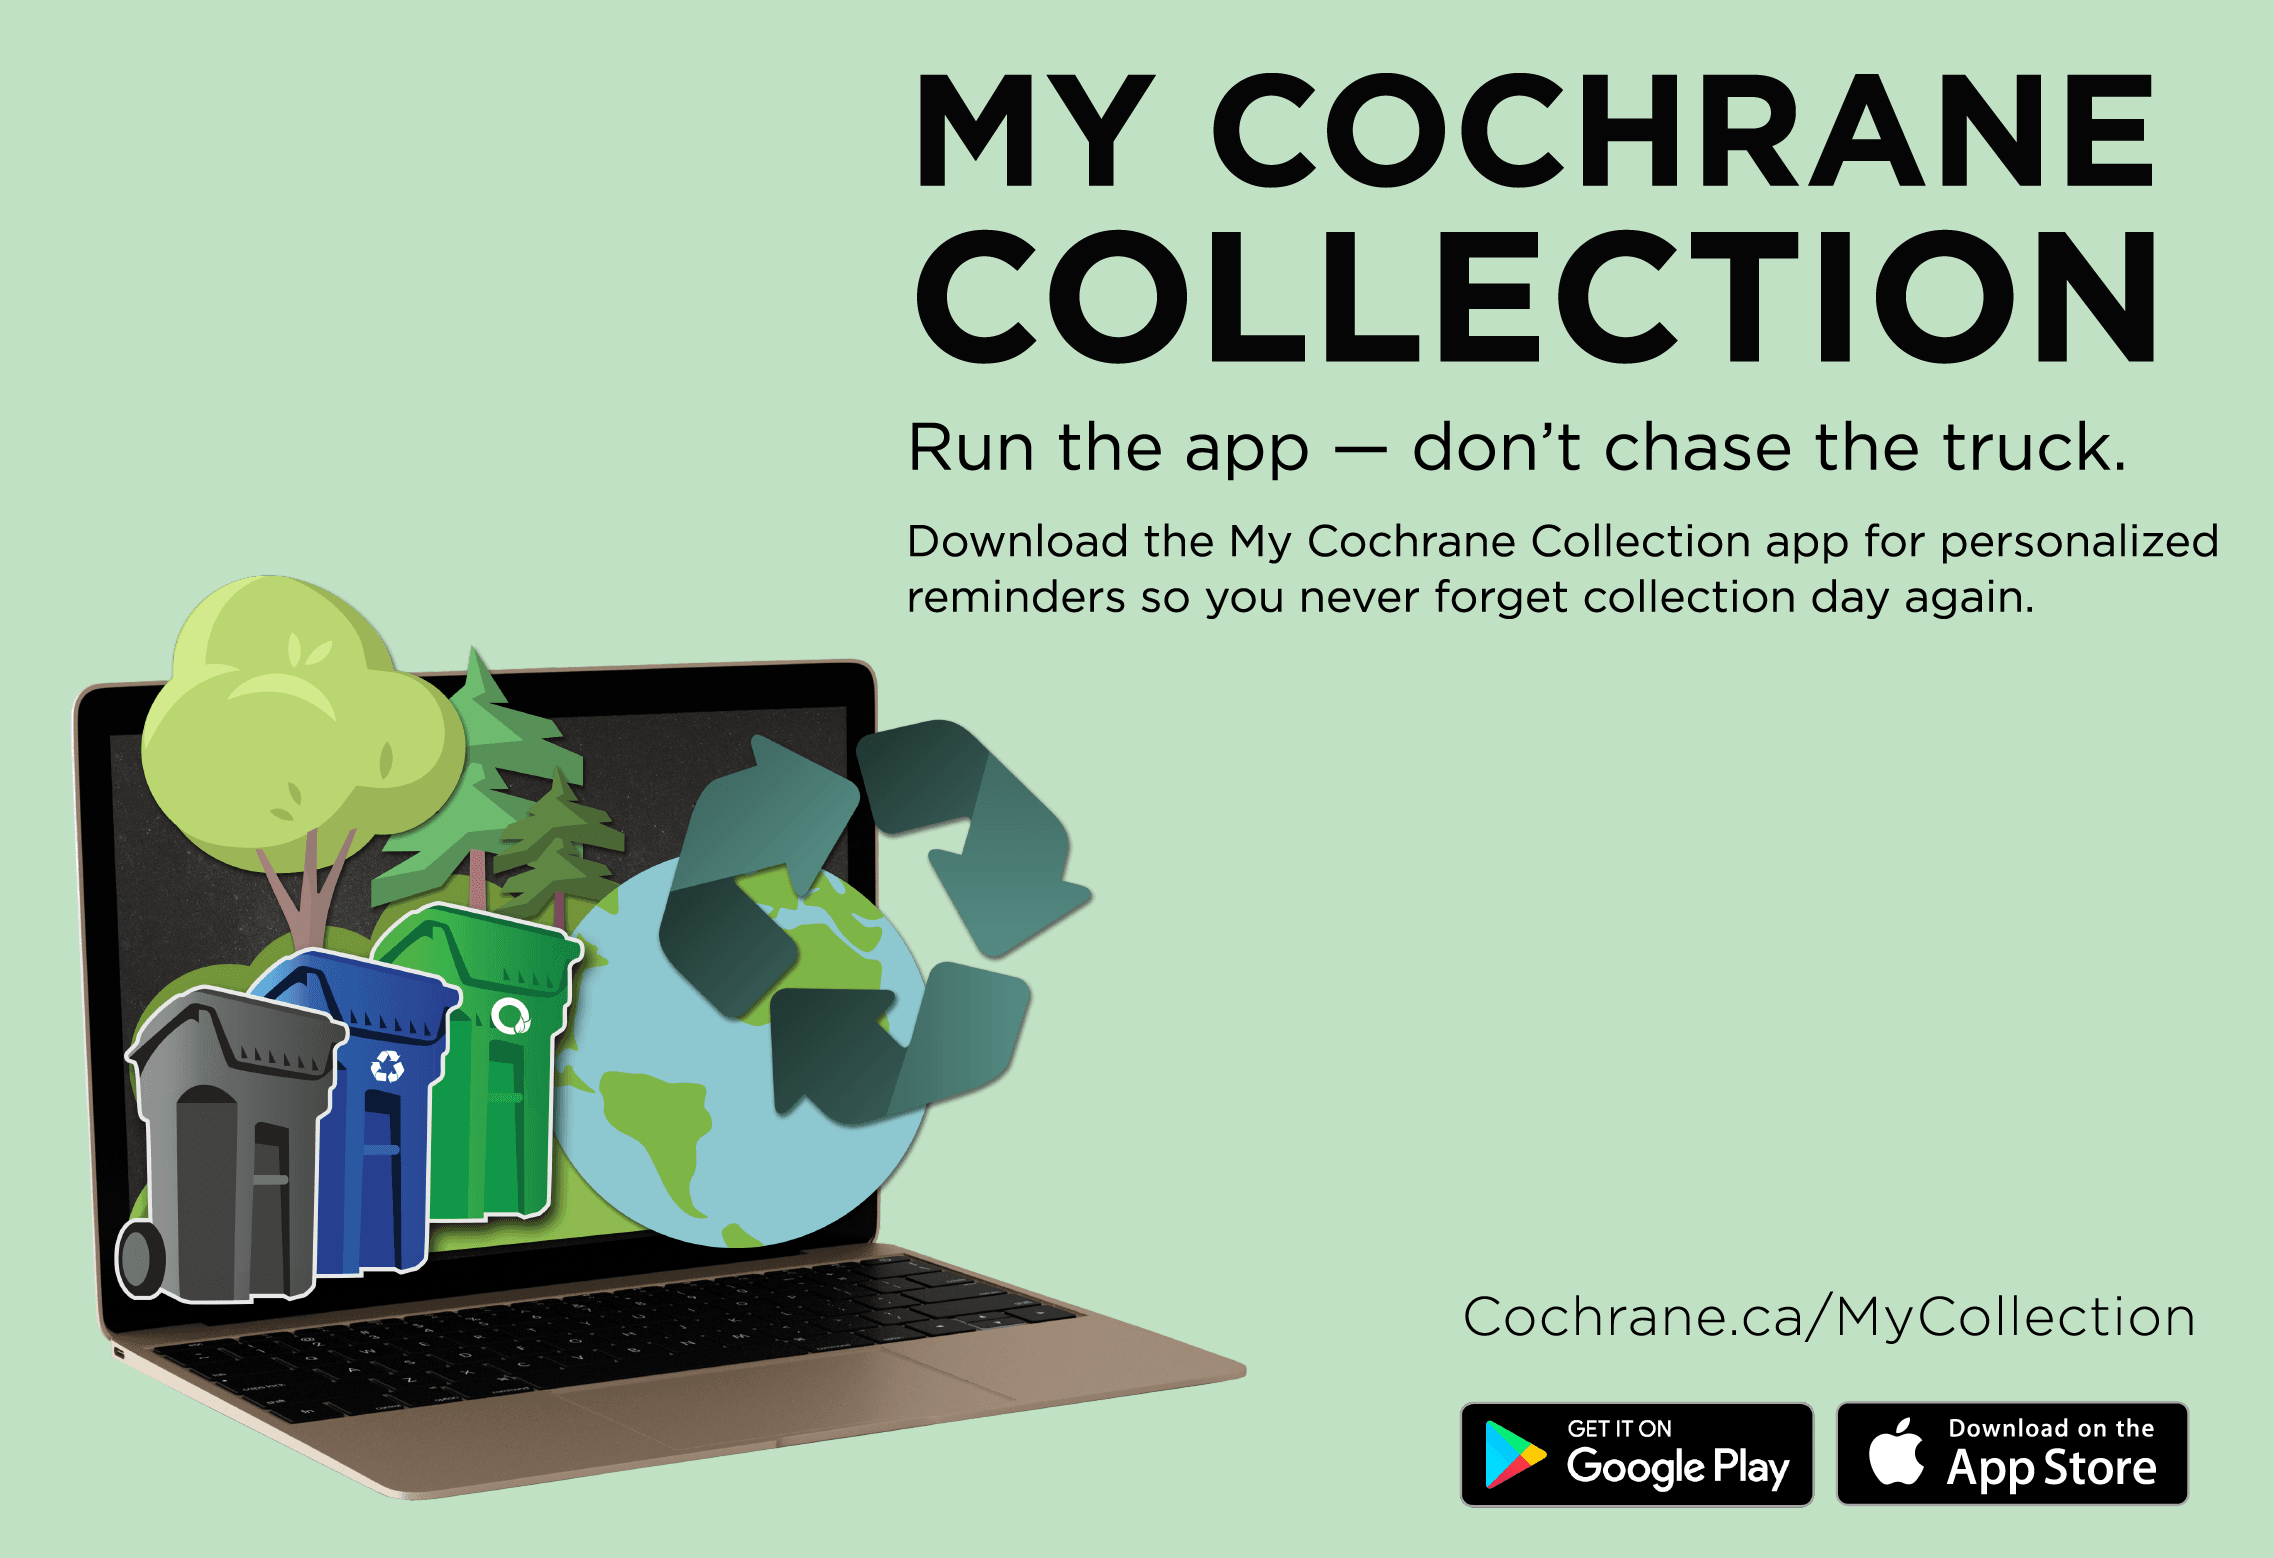 MyCochraneCollection